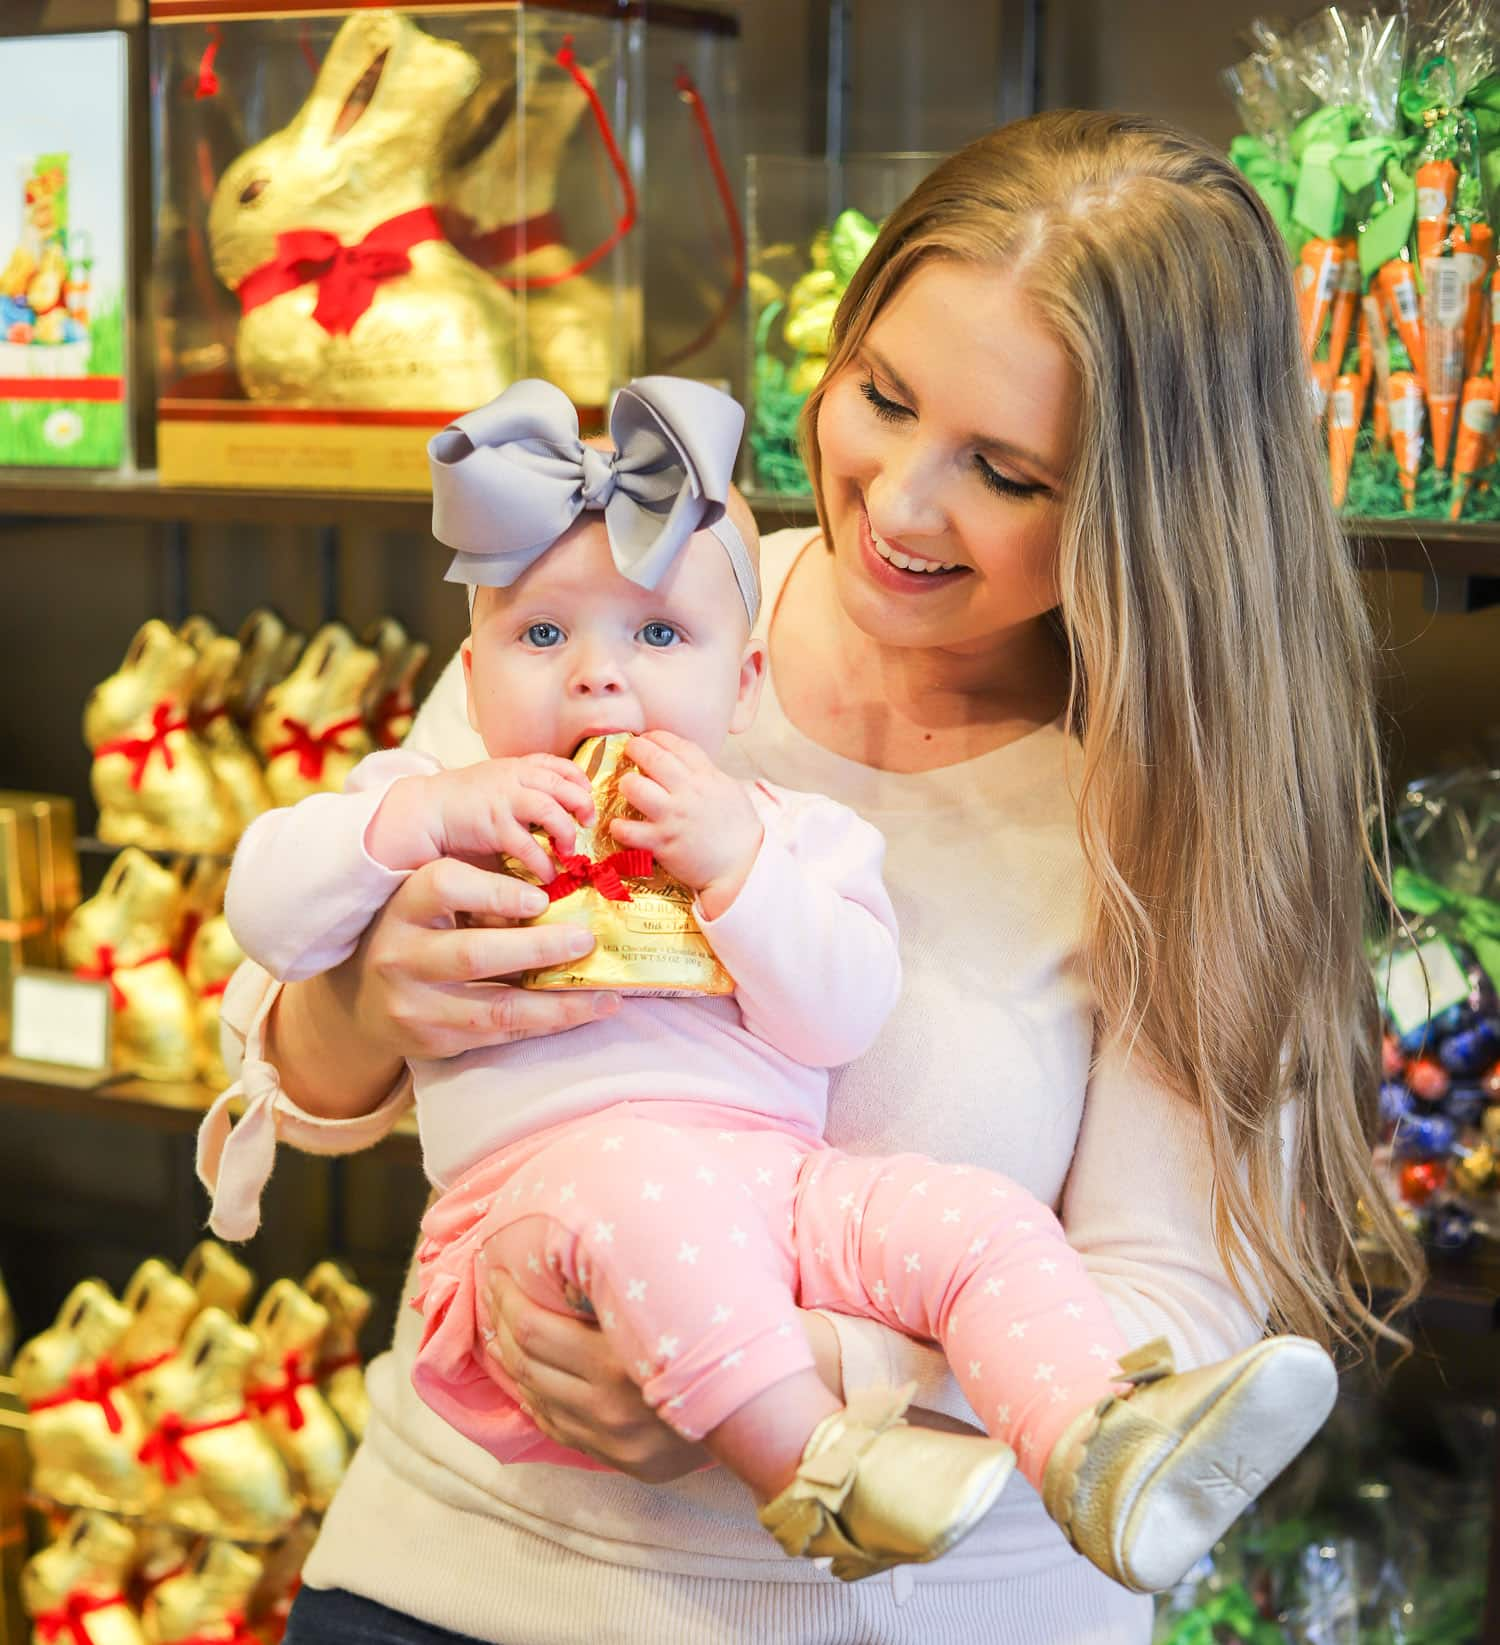 cute baby girl eating lindt chocolate gold bunny mom smiling at lindt store